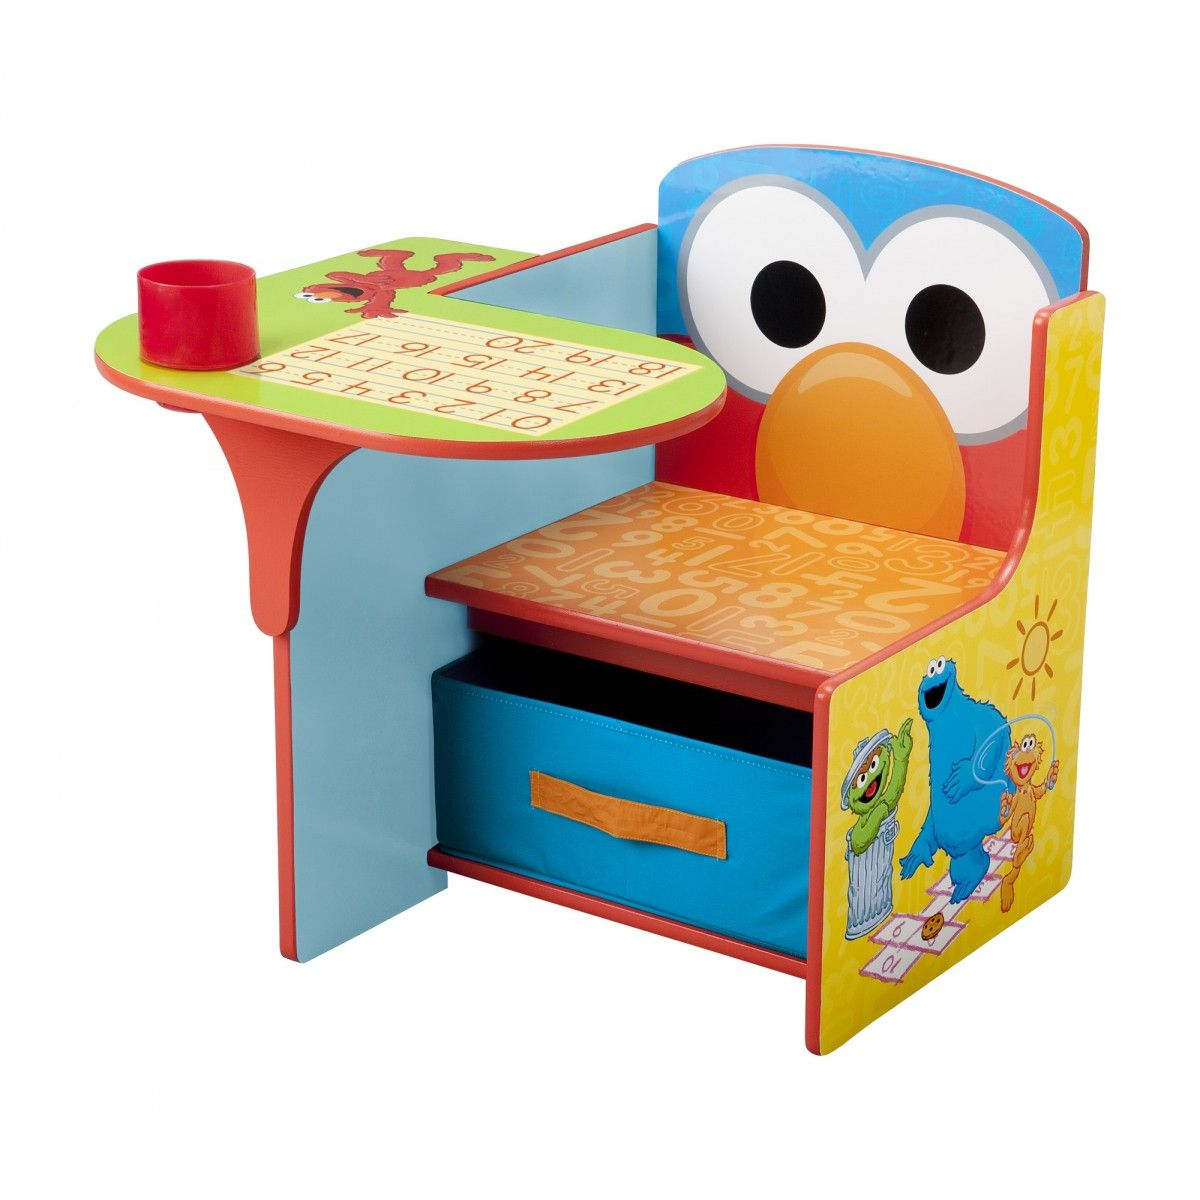 Elmo And Sesame Street Friends Desk Chair With Storage